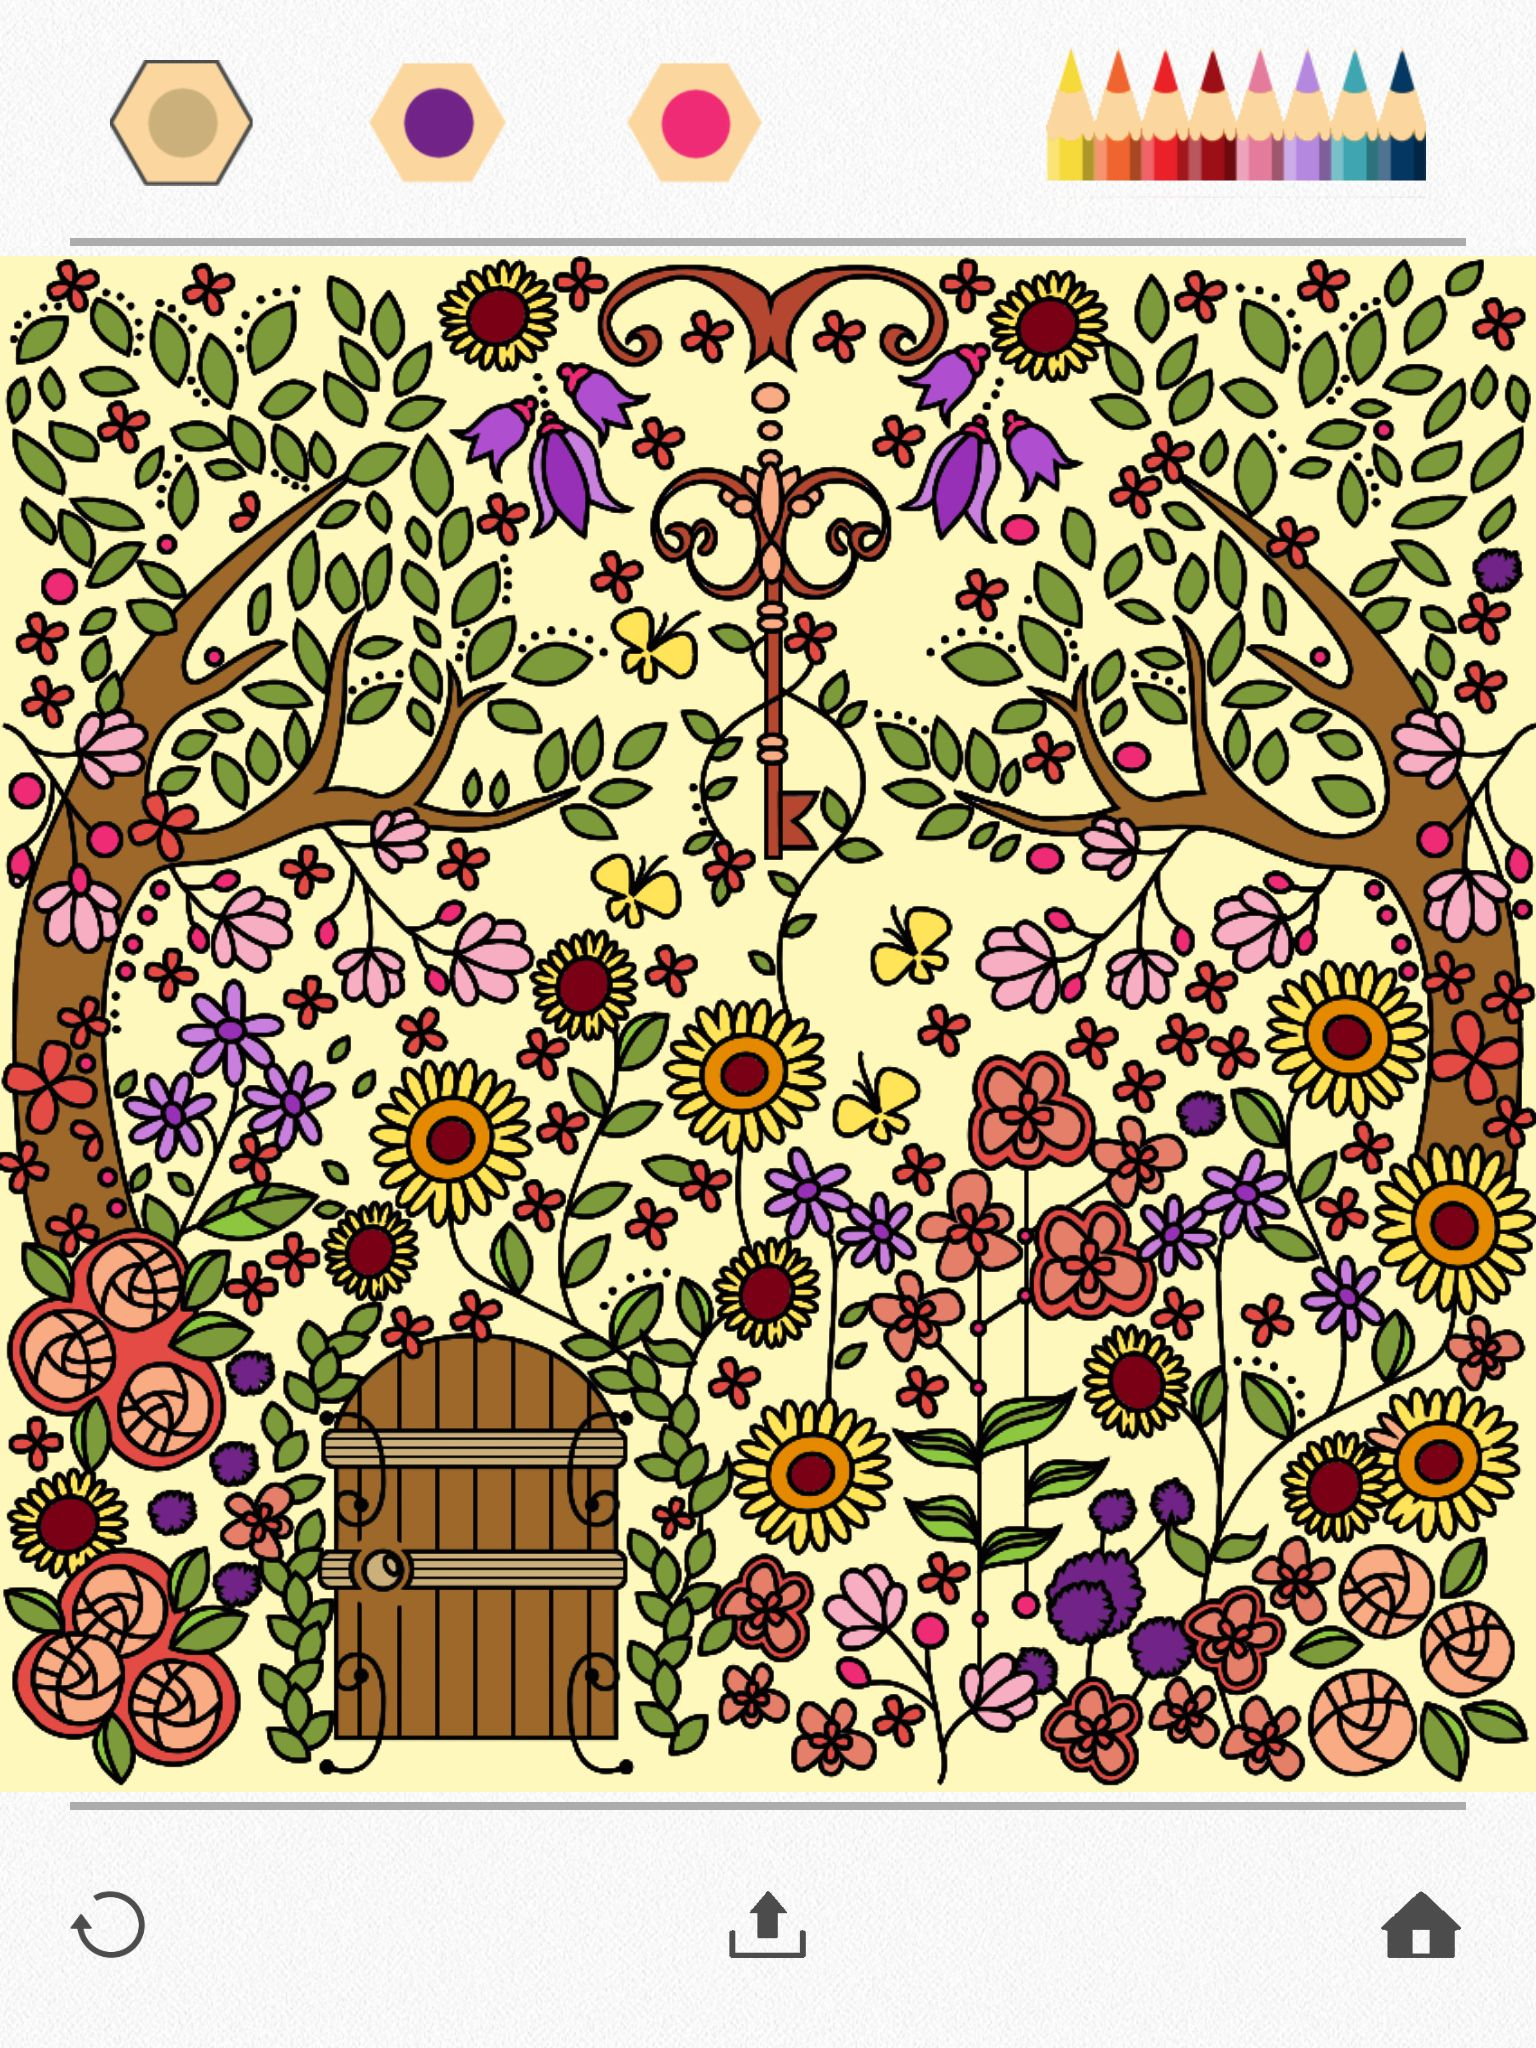 Colorfy coloring book for adults free online - Color A Beautiful Garden Using Colorfy Online Coloring Book For Adults Download It For